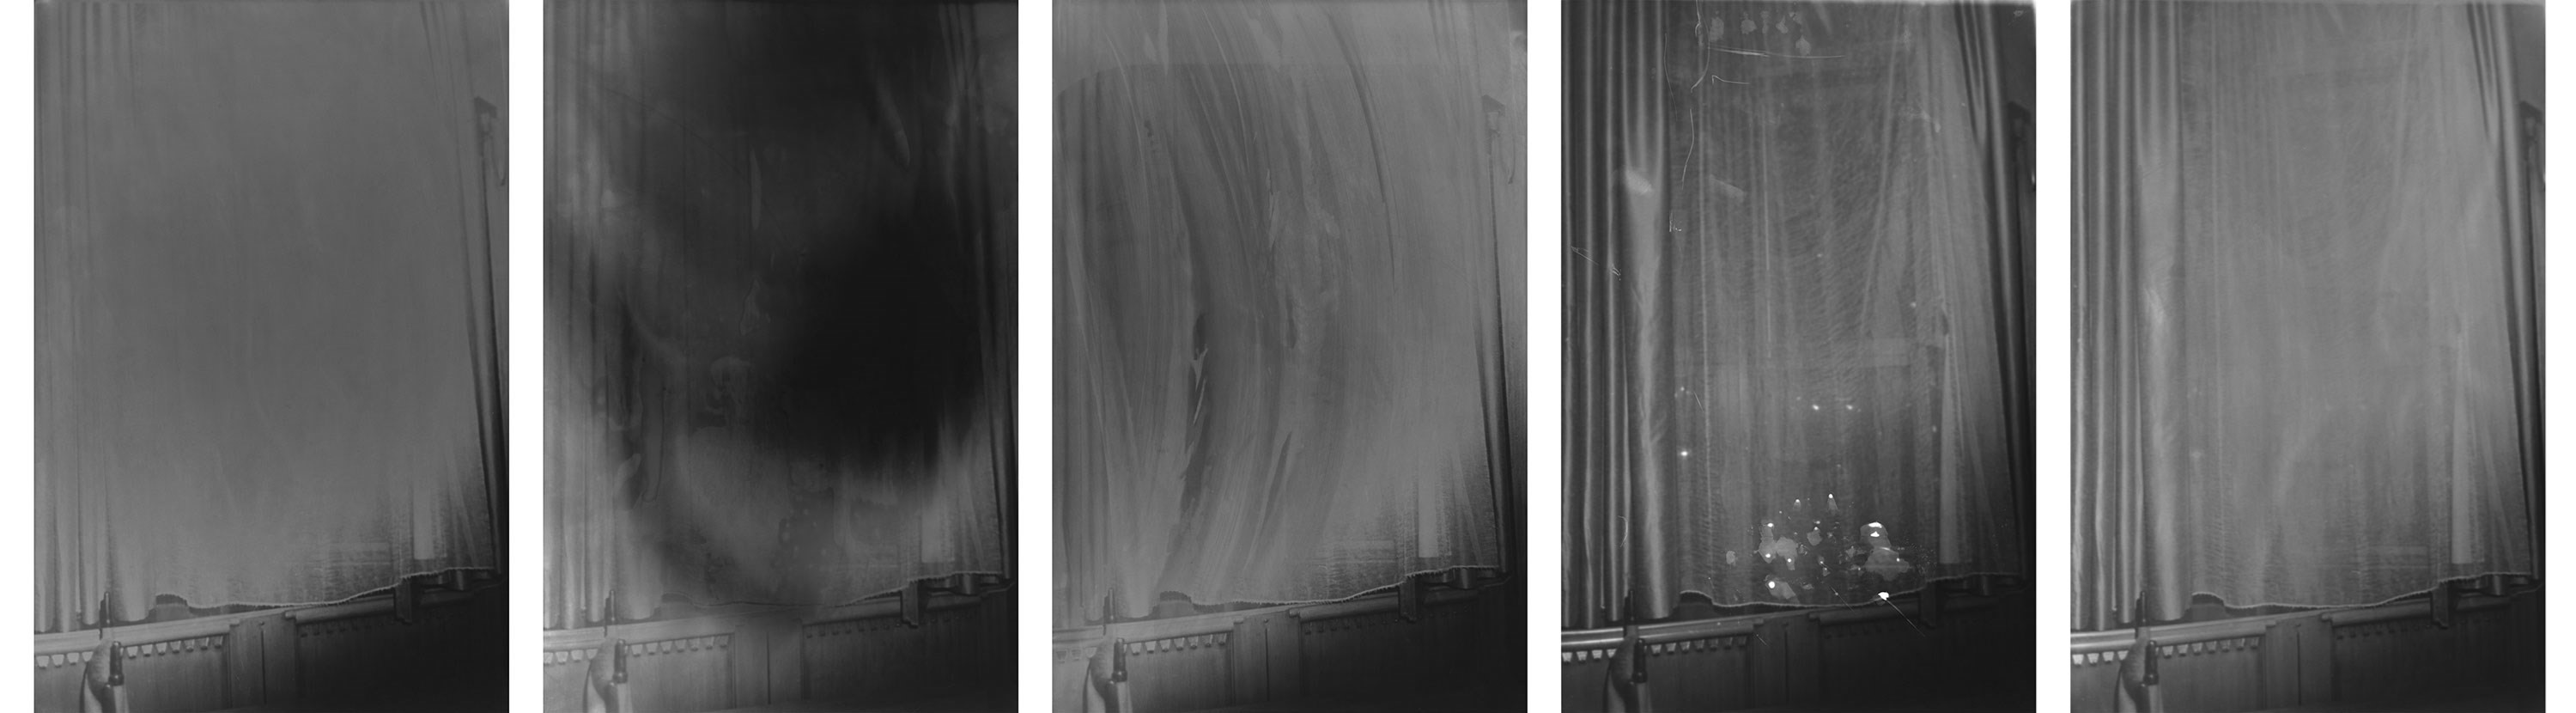 Dirk Braeckman's Bewitching Display for Venice Biennale   AnOther